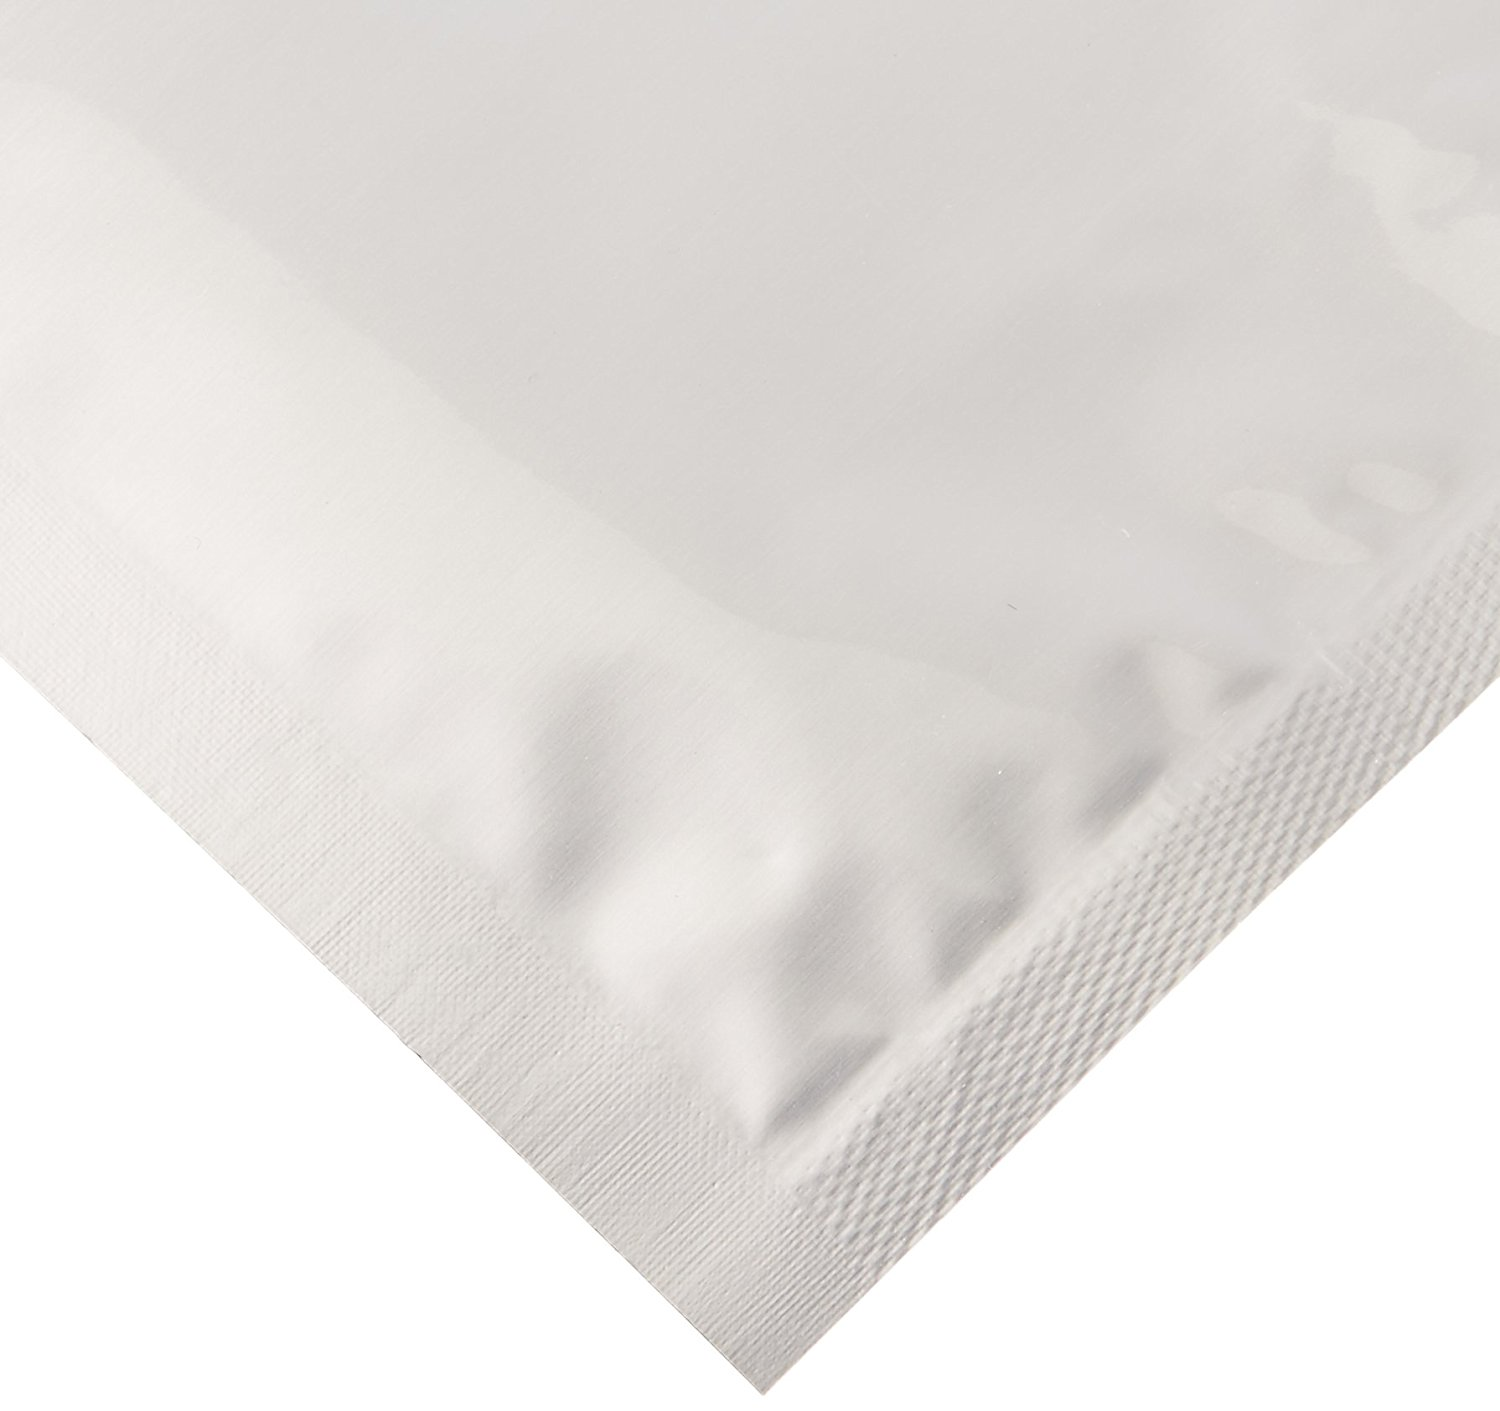 Mylar Bags 8 by 8-Inch for Dried Food and Long Term Stora...